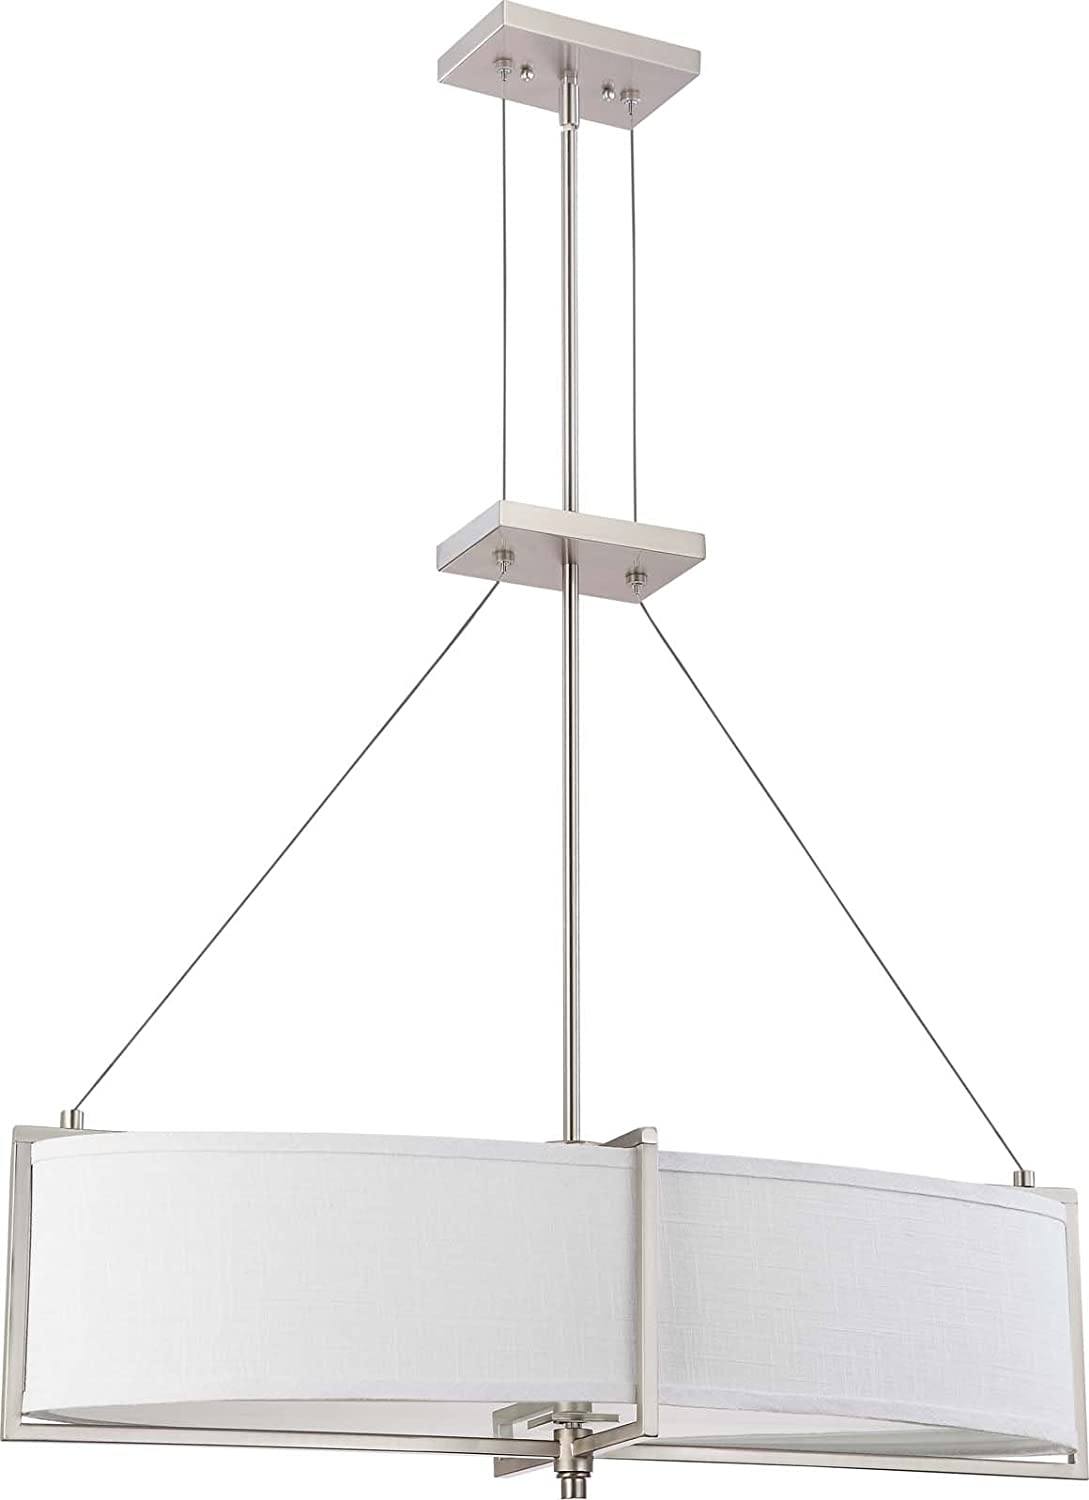 Nuvo lighting 604467 four light portia pendant with slate gray nuvo lighting 604467 four light portia pendant with slate gray fabricfrosted diffuser brushed nickel ceiling pendant fixtures amazon mozeypictures Choice Image